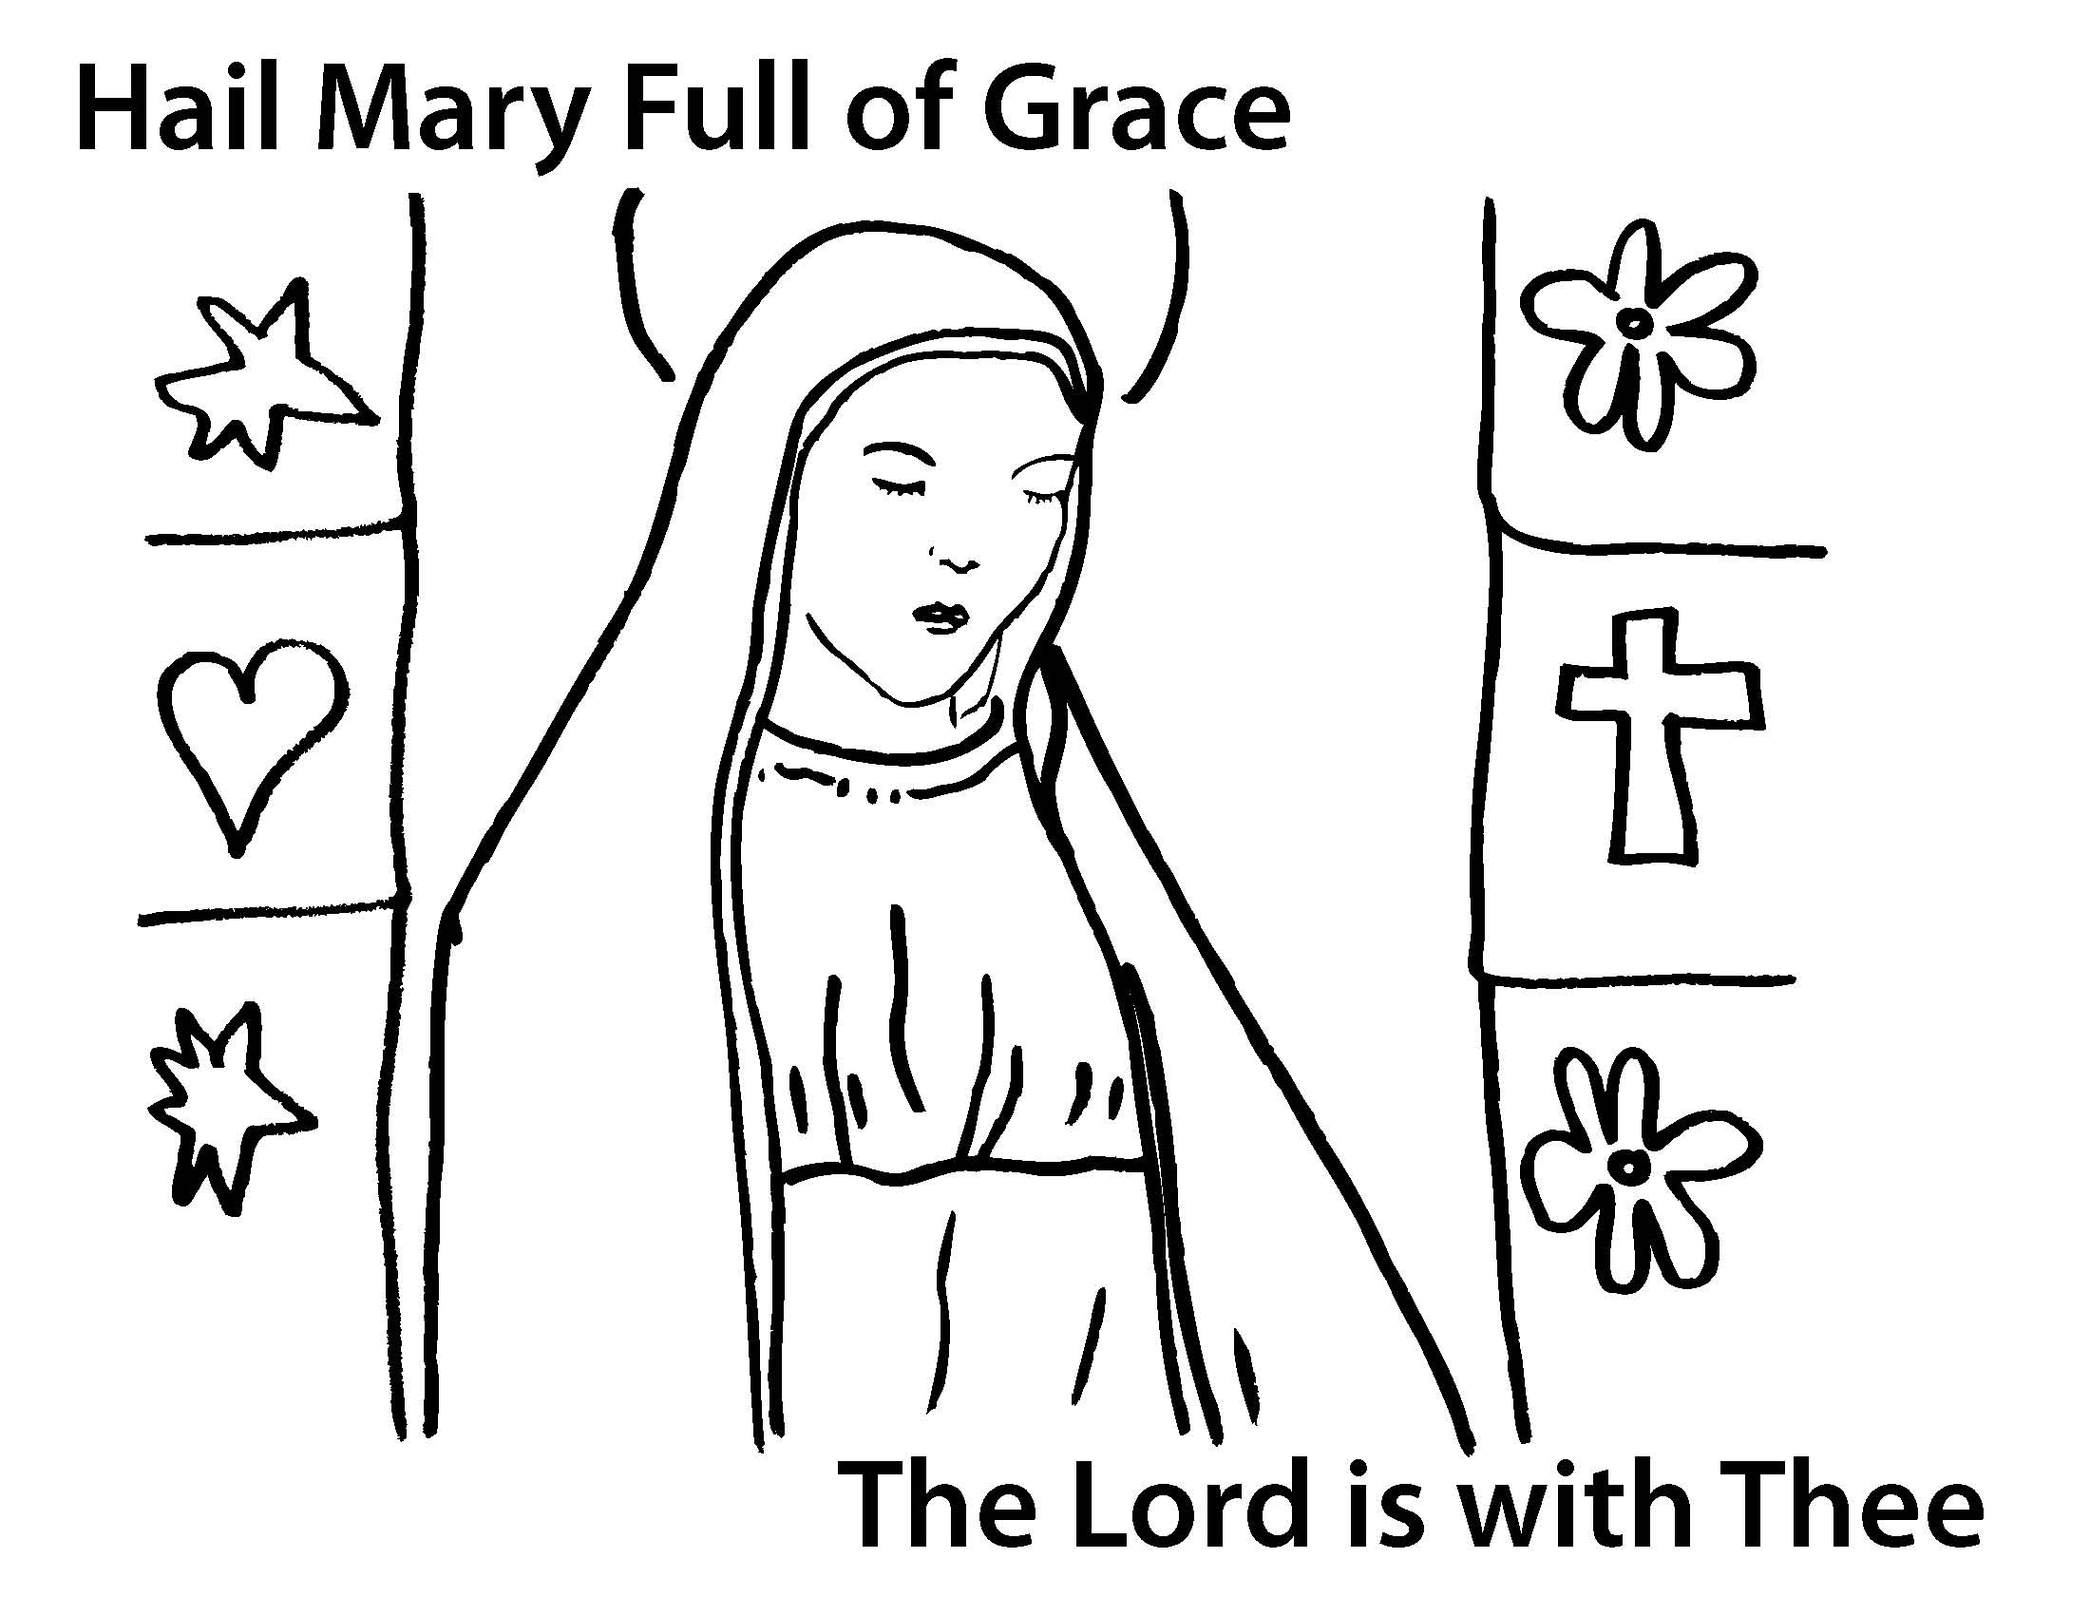 Free coloring pages virgin mary - Mary Mother Of God Coloring Page Clipart Free To Use Clip Art